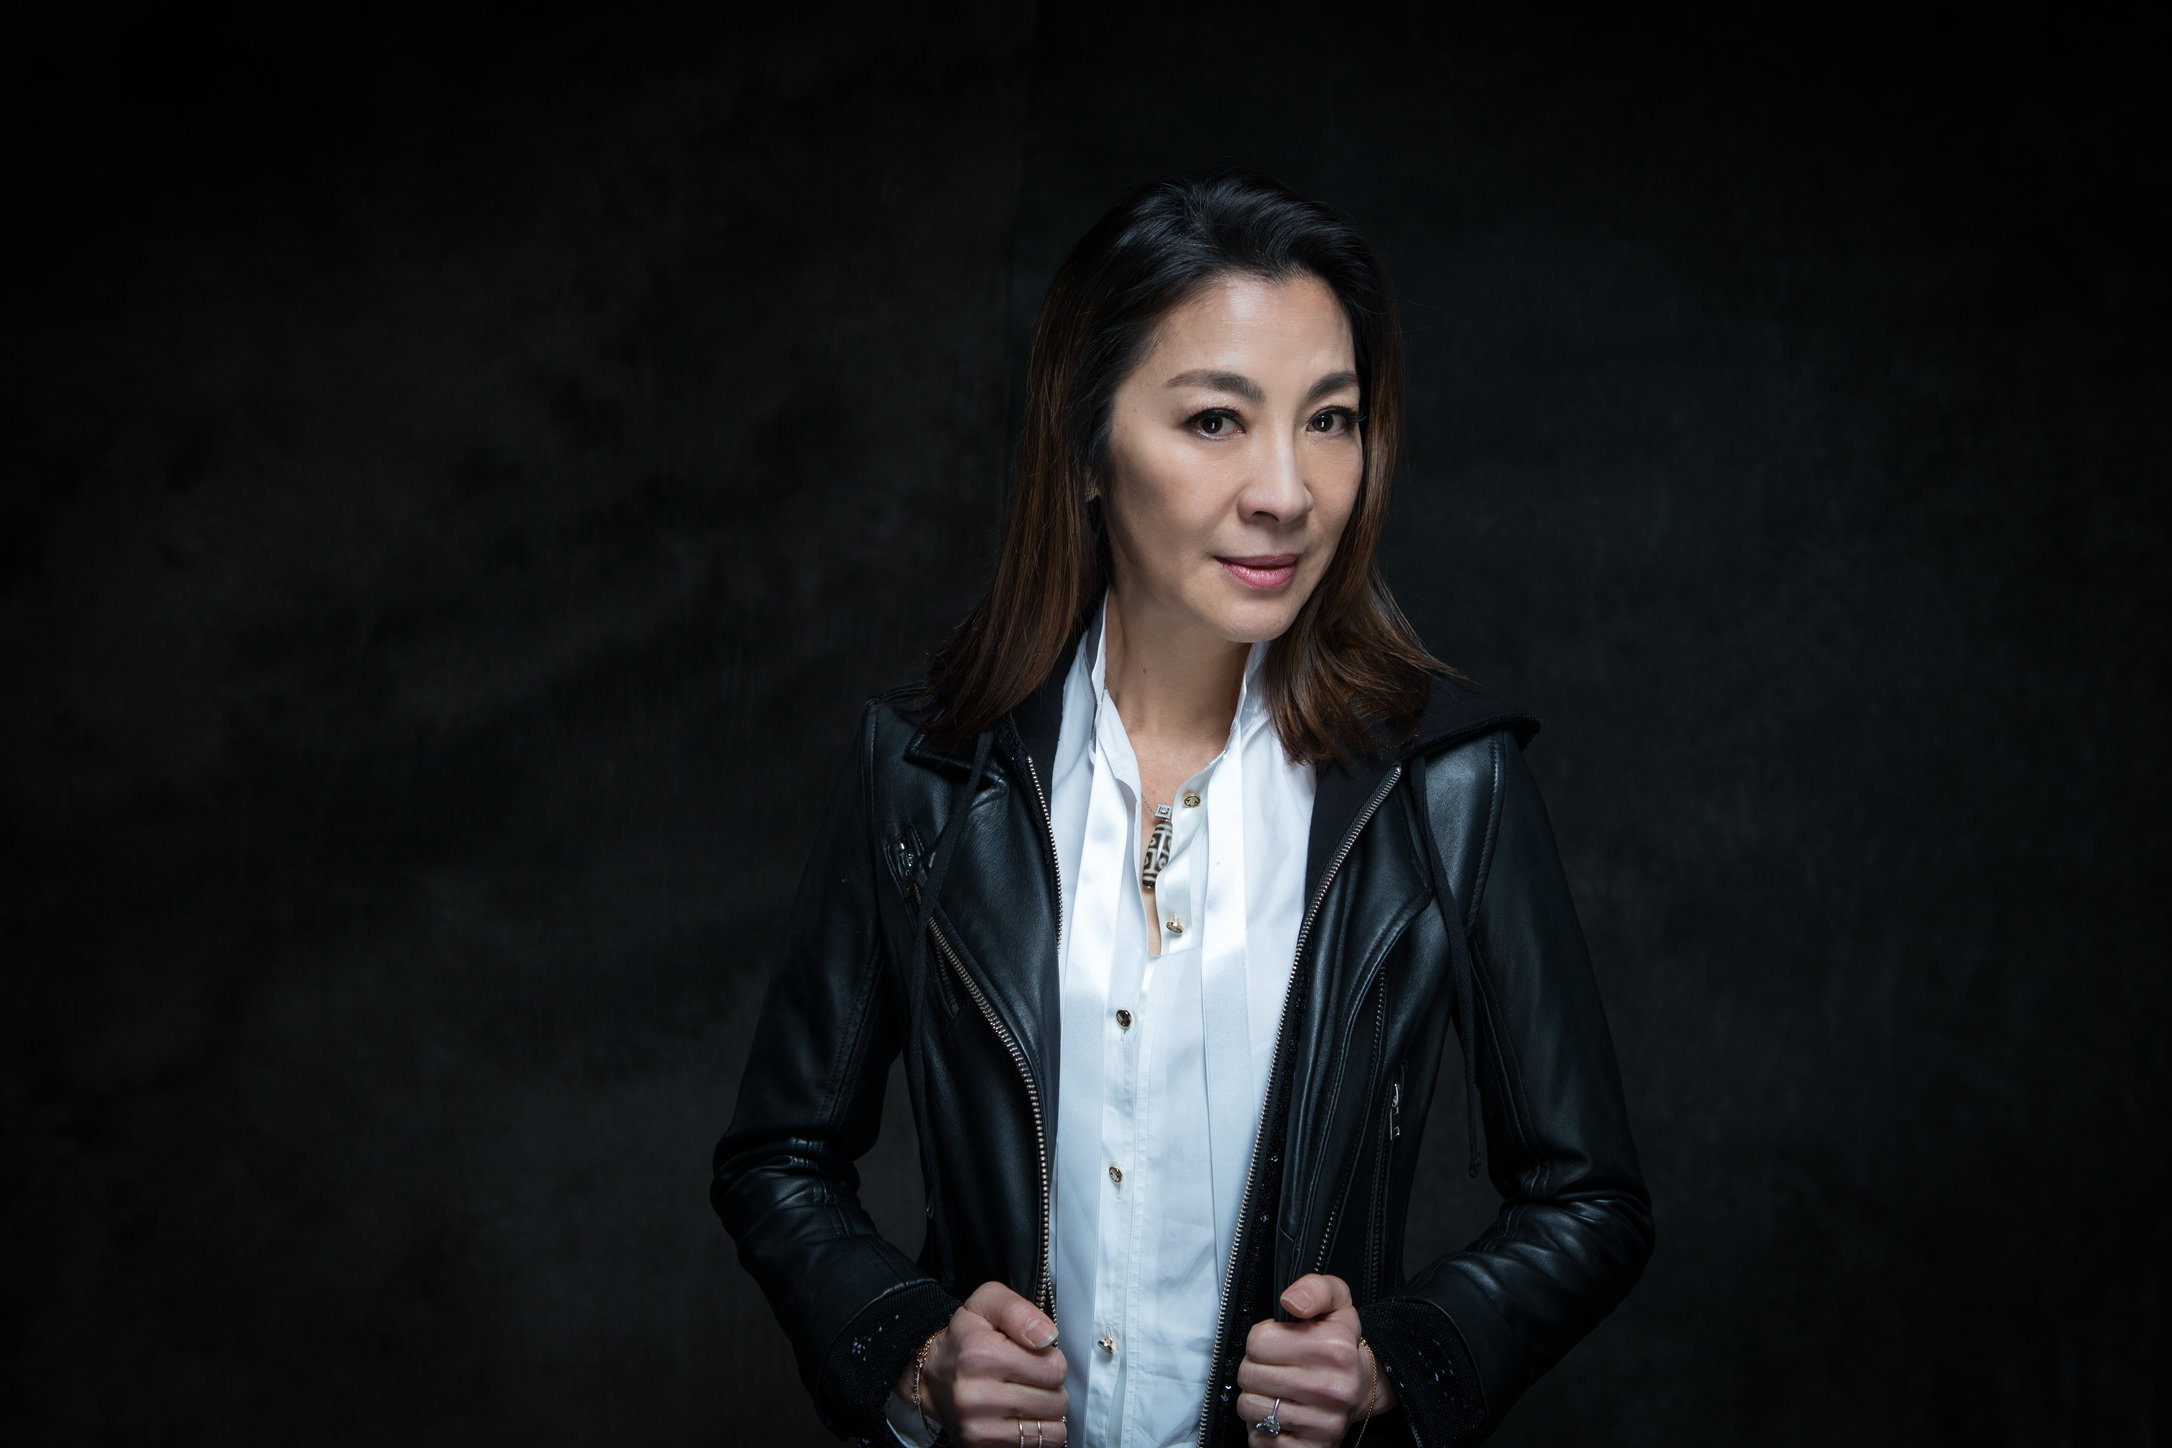 michelle yeoh, actress